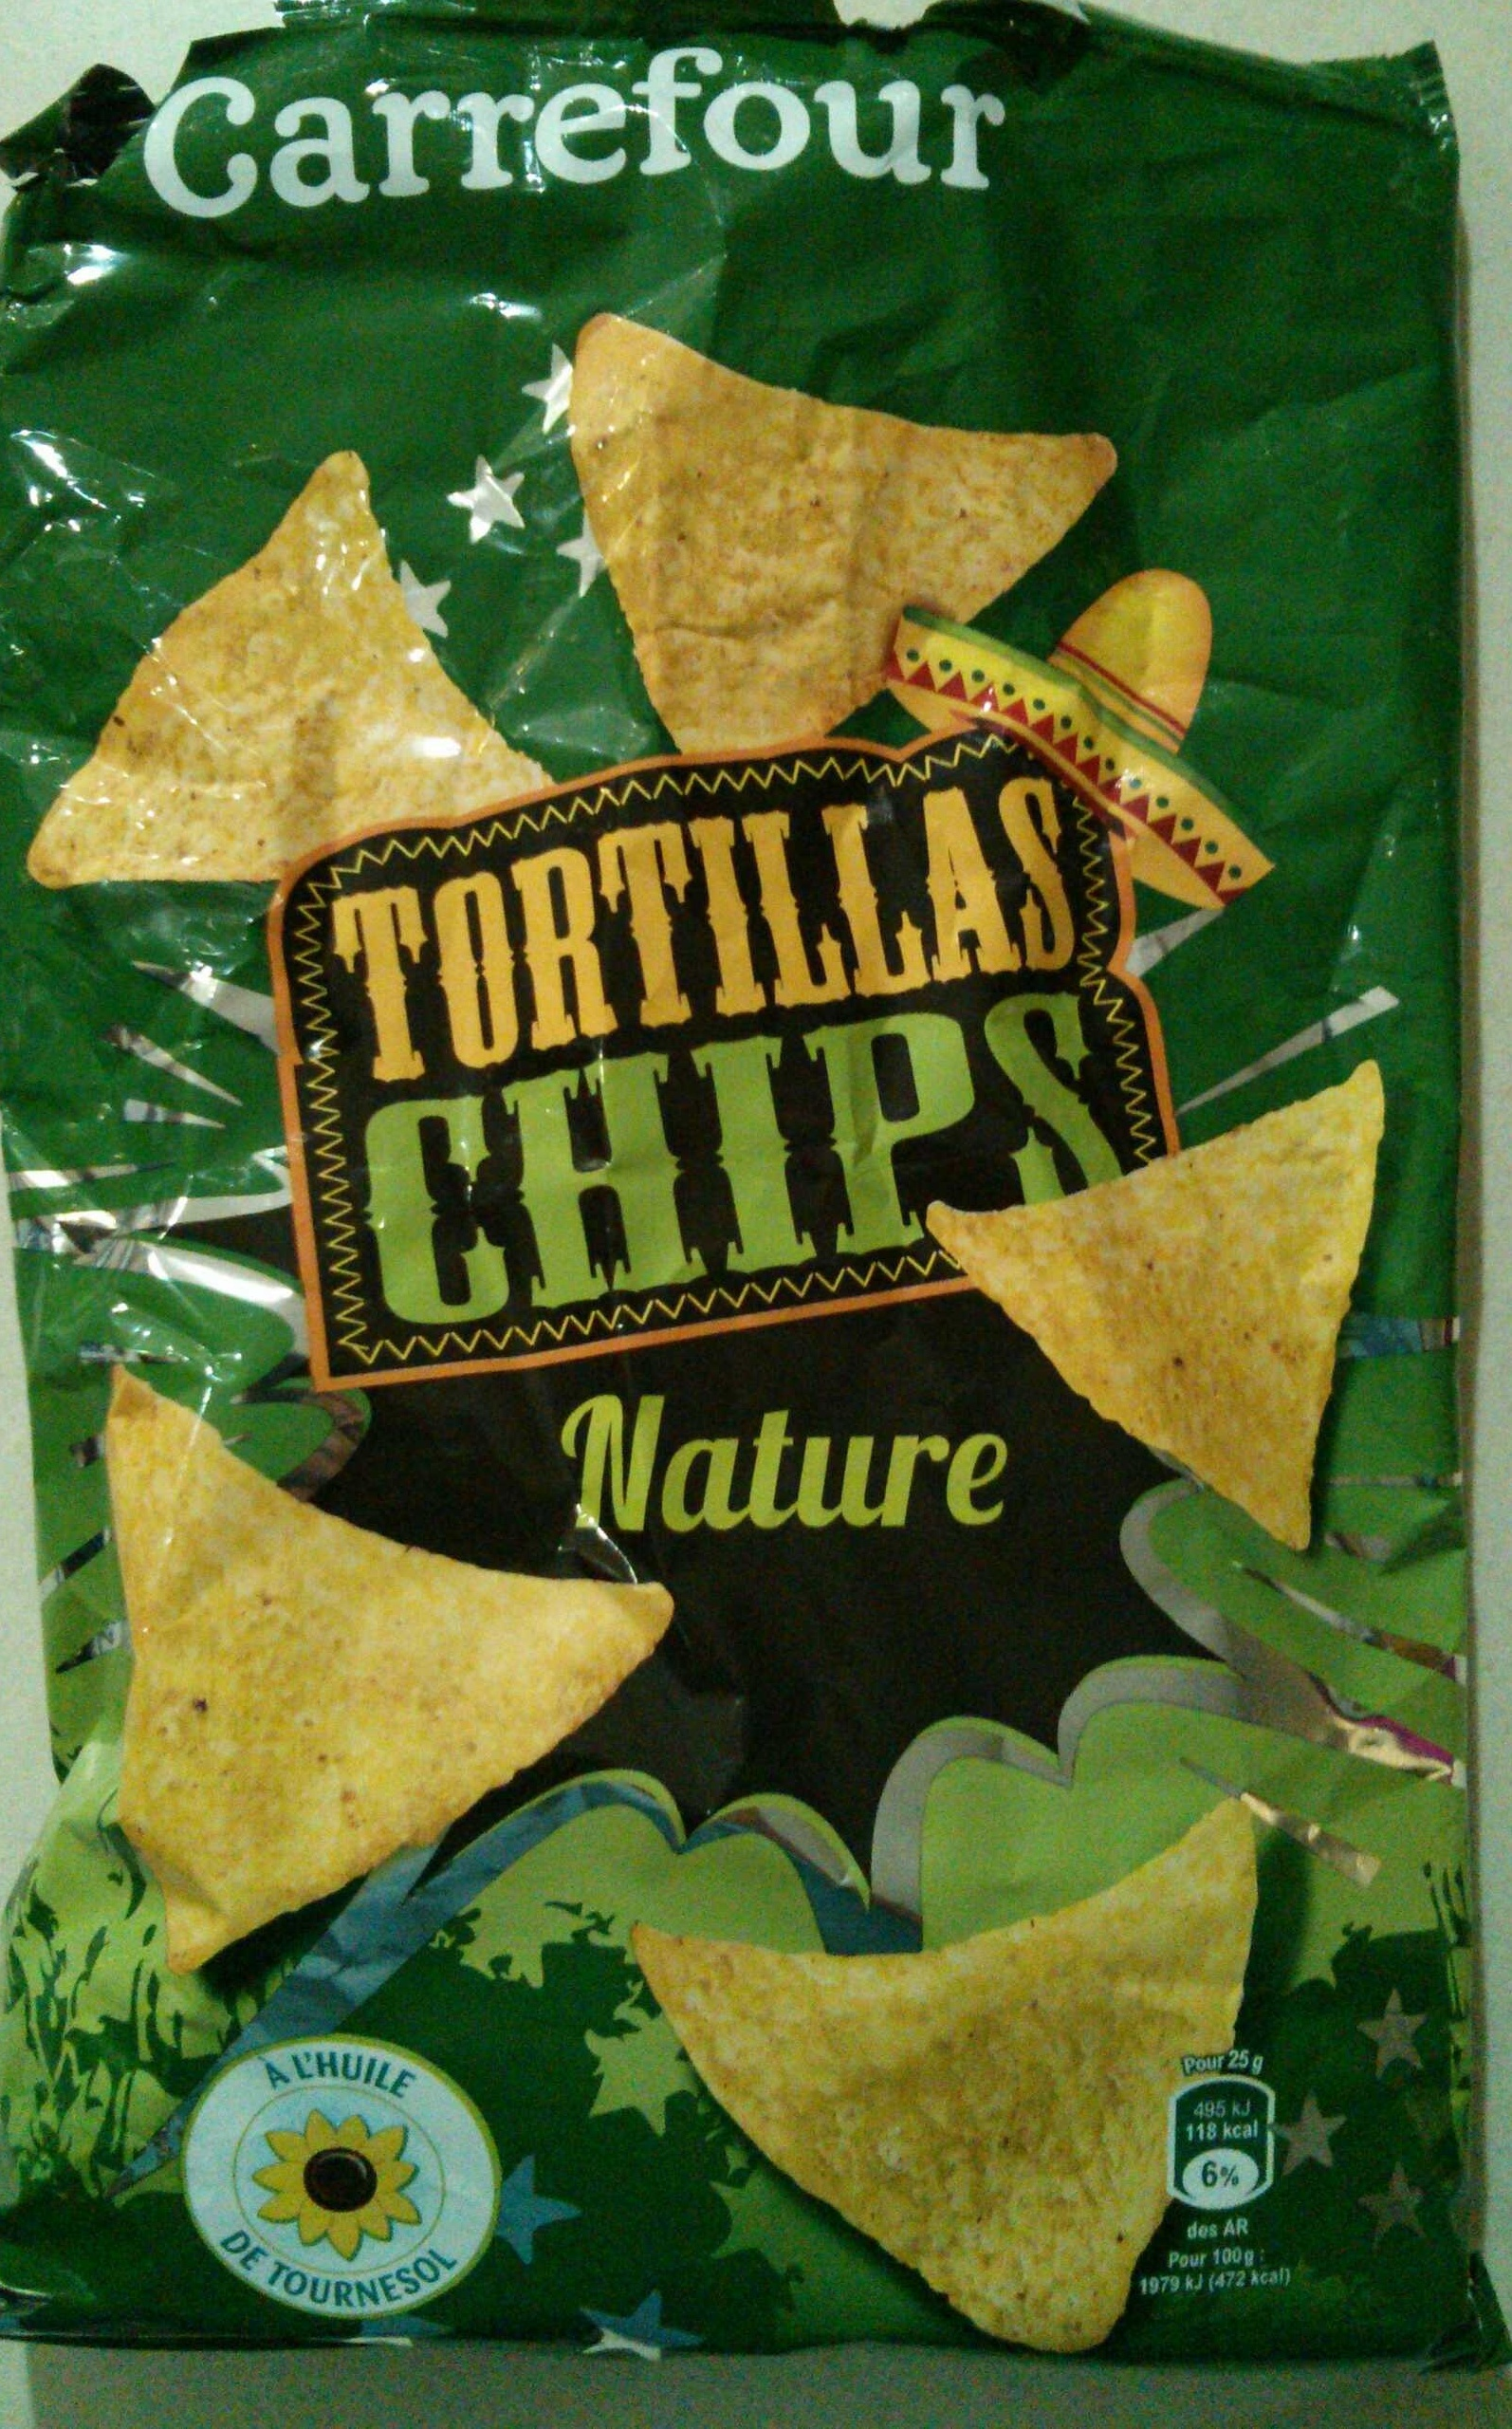 Tortillas chips nature - Product